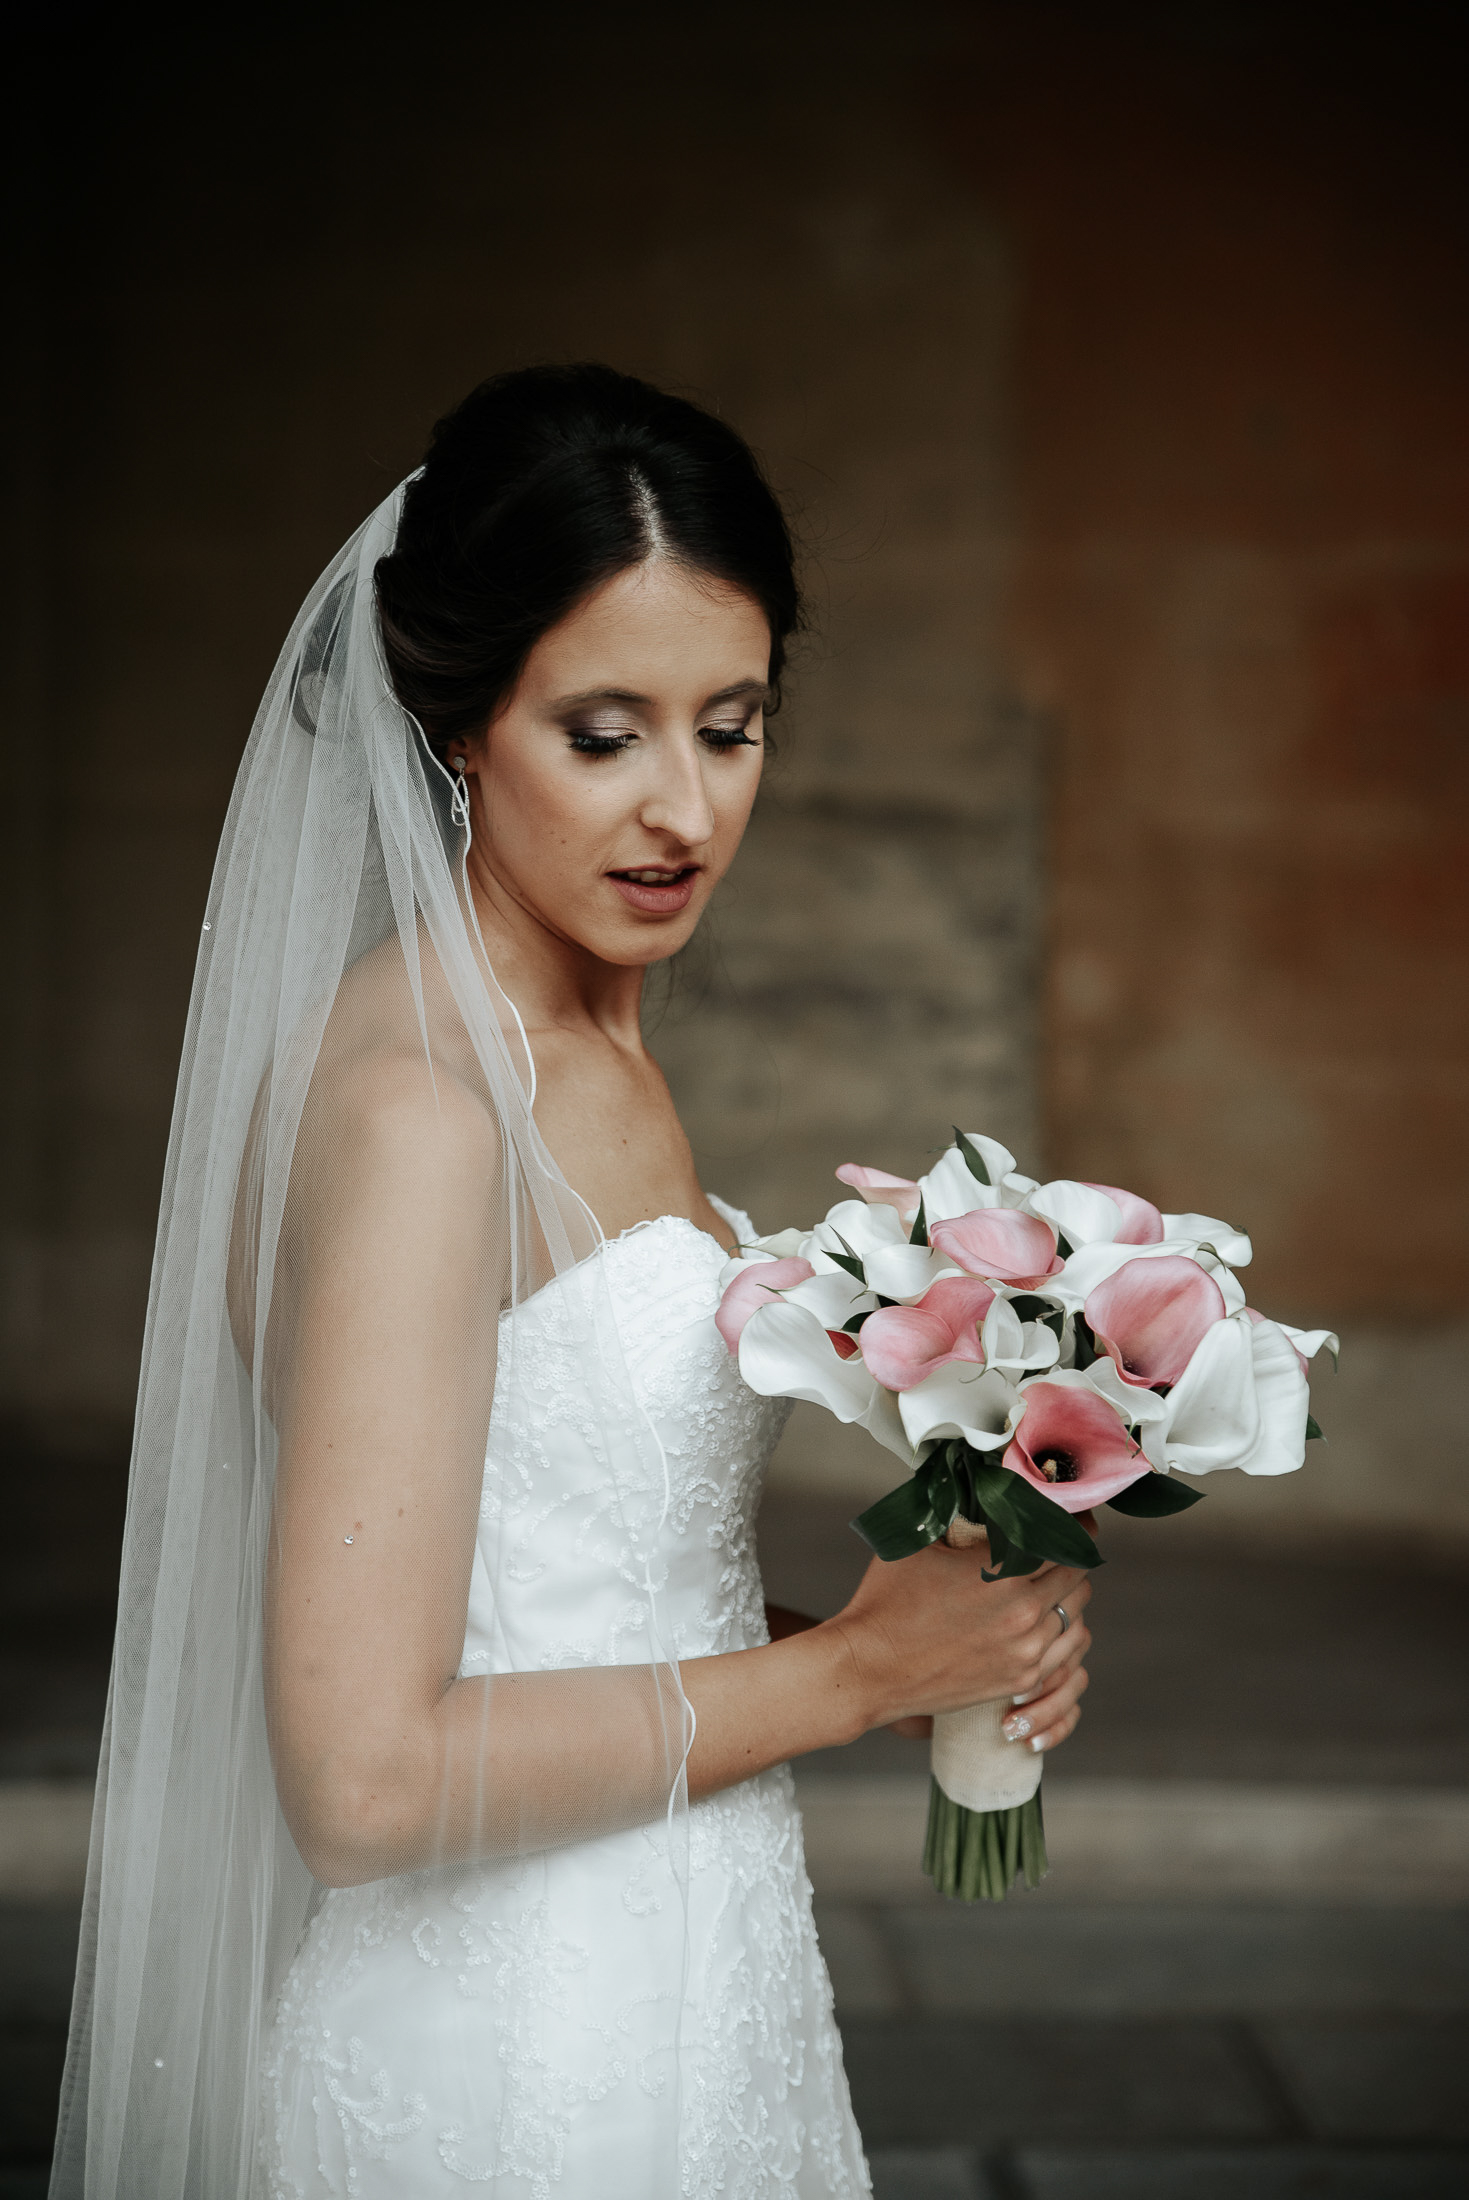 Wedding in Alhambra - Nice Bride